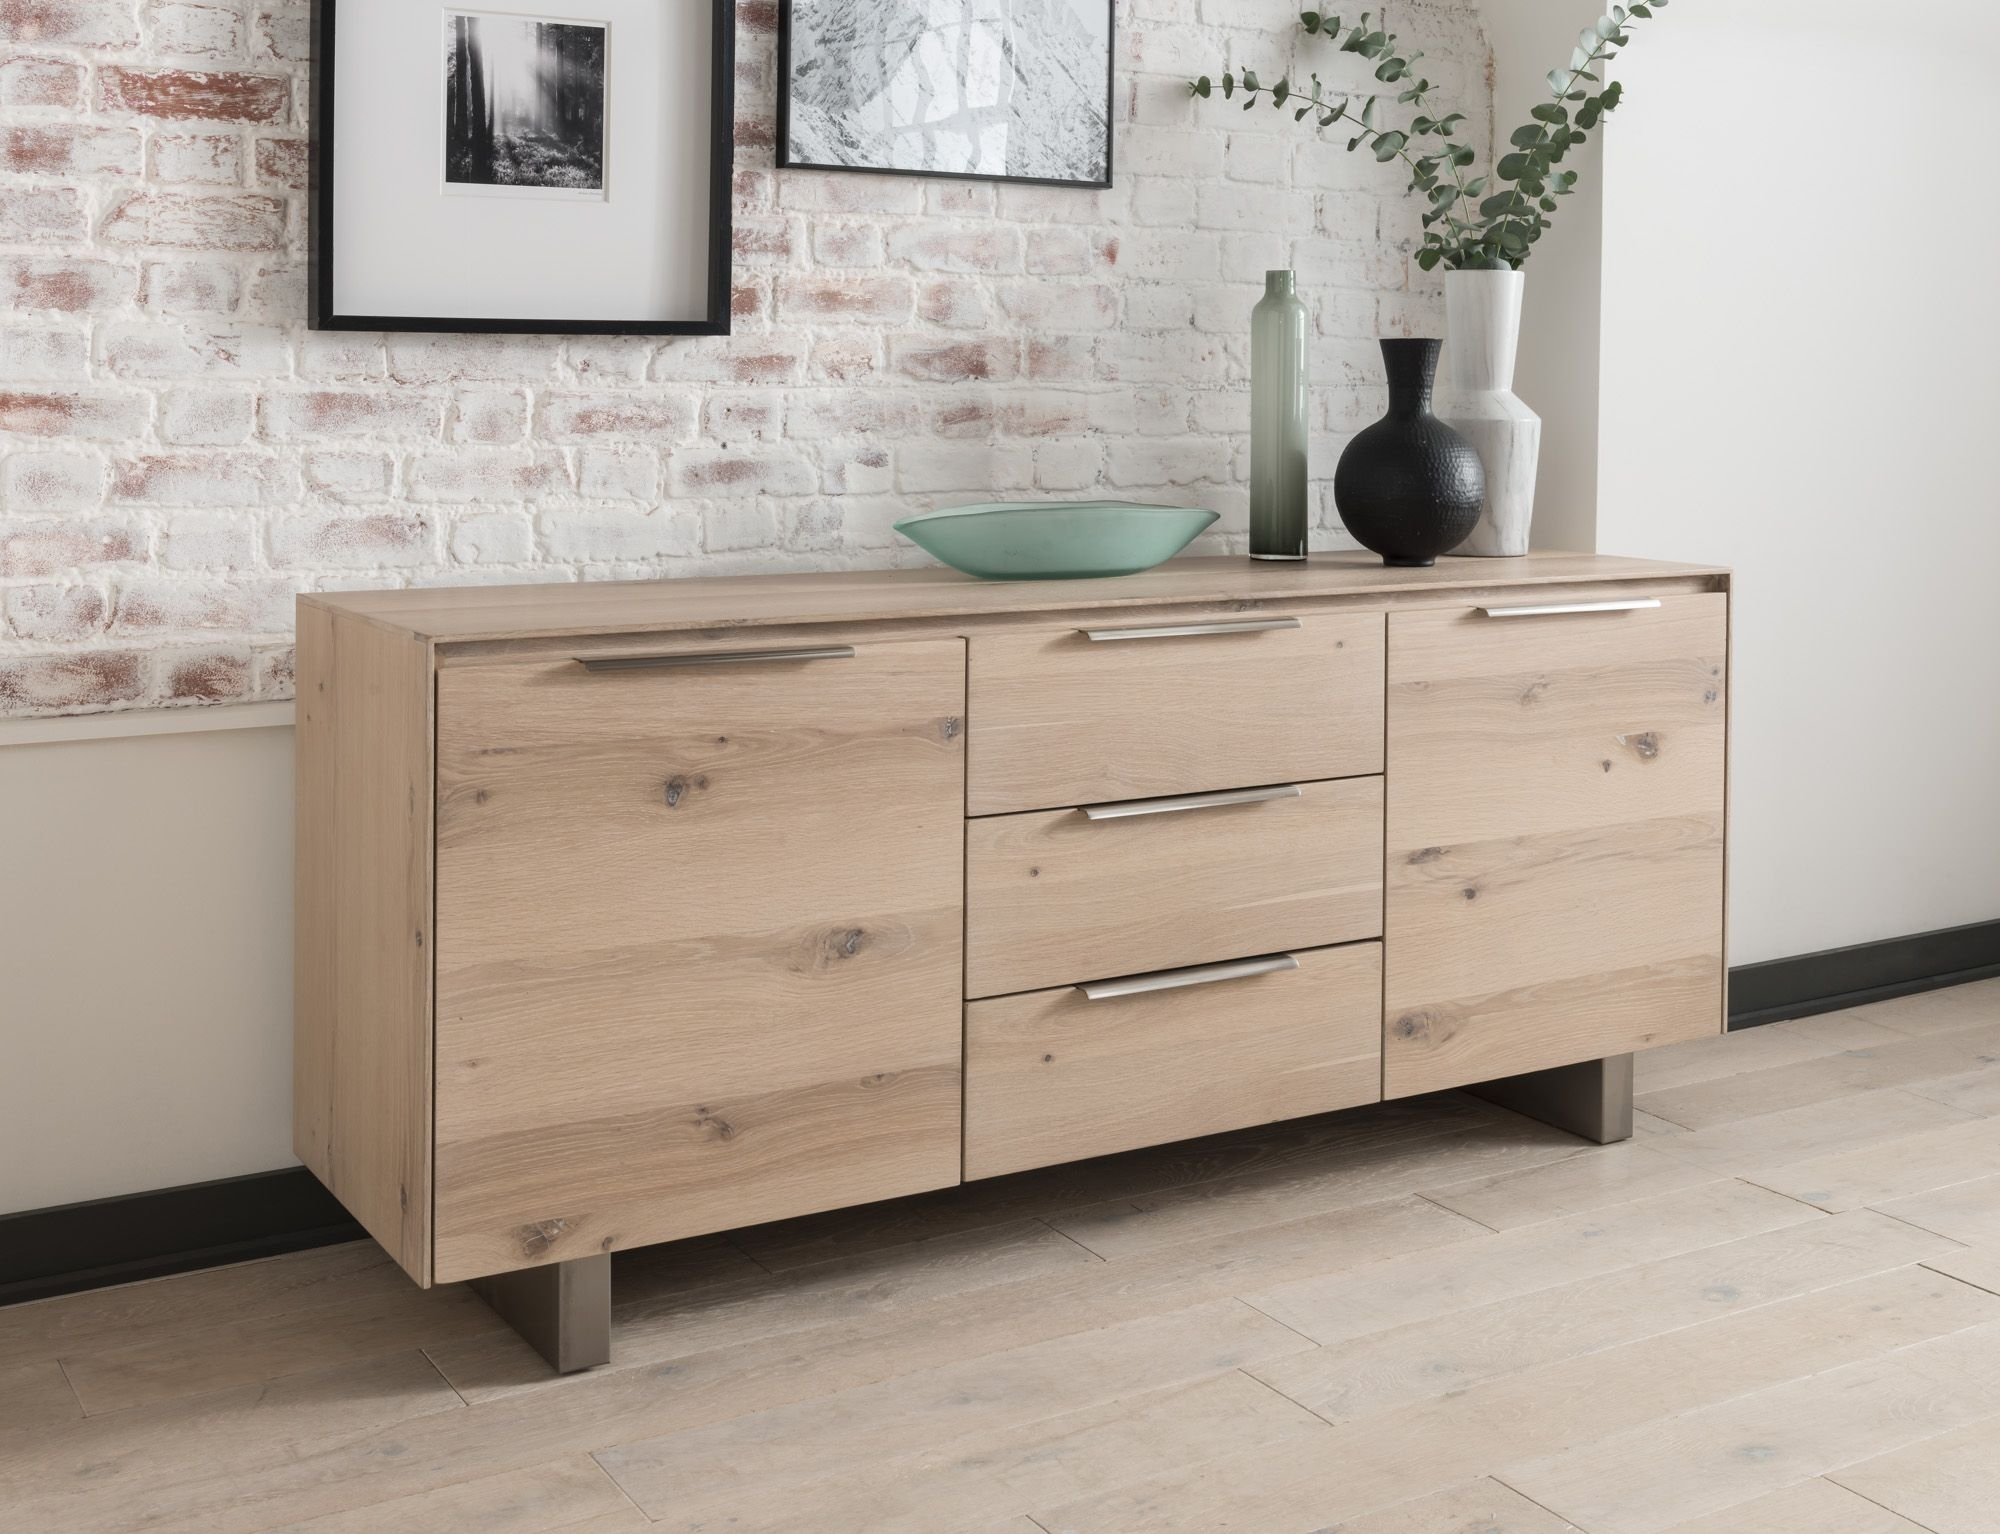 Capua White Washed Oak Sideboard 18vd175 For Recent 3 Drawer/2 Door White Wash Sideboards (View 9 of 20)